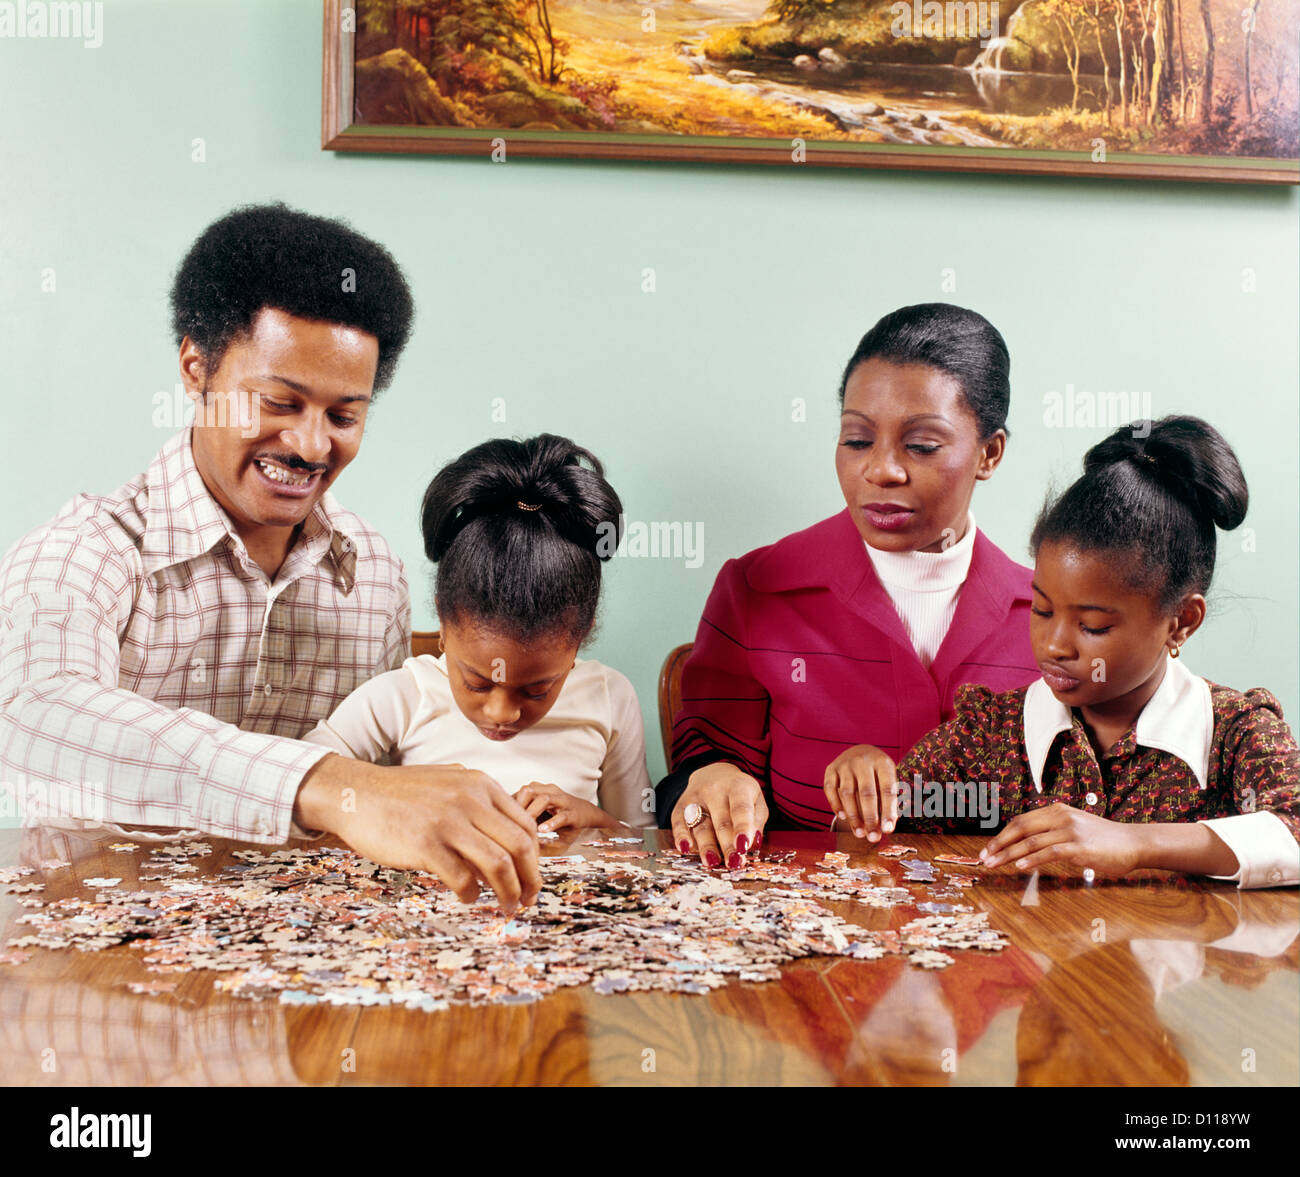 1970s AFRICAN-AMERICAN FAMILY MAN WOMAN MOTHER FATHER TWO CHILDREN GIRLS SITTING TABLE DOING JIGSAW PUZZLE RETRO - Stock Image